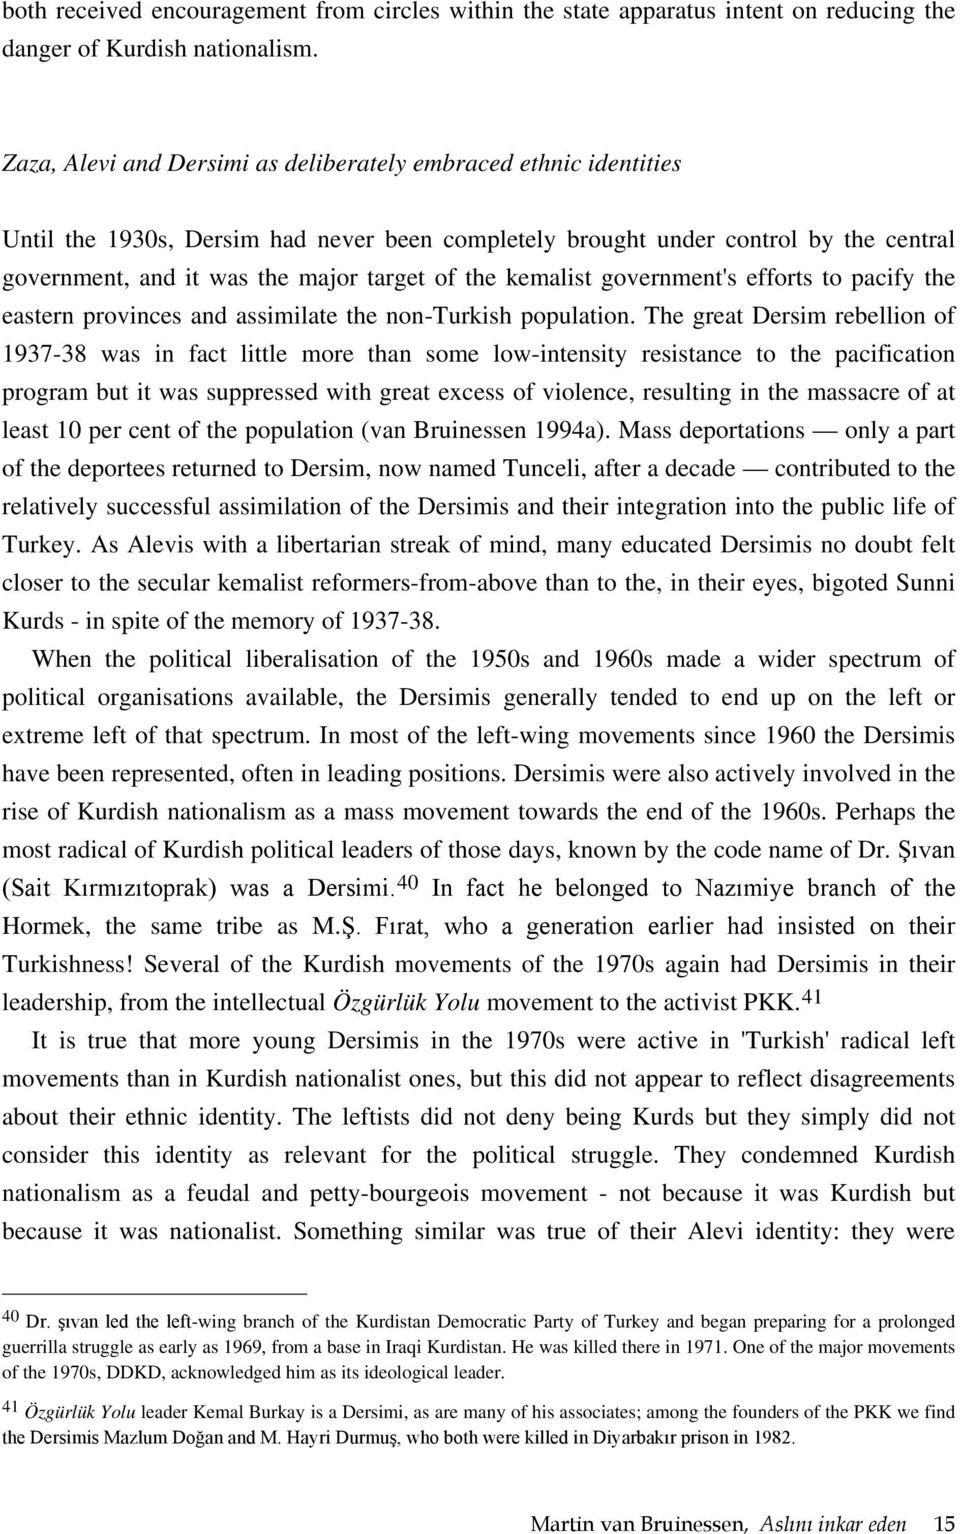 the kemalist government's efforts to pacify the eastern provinces and assimilate the non-turkish population.